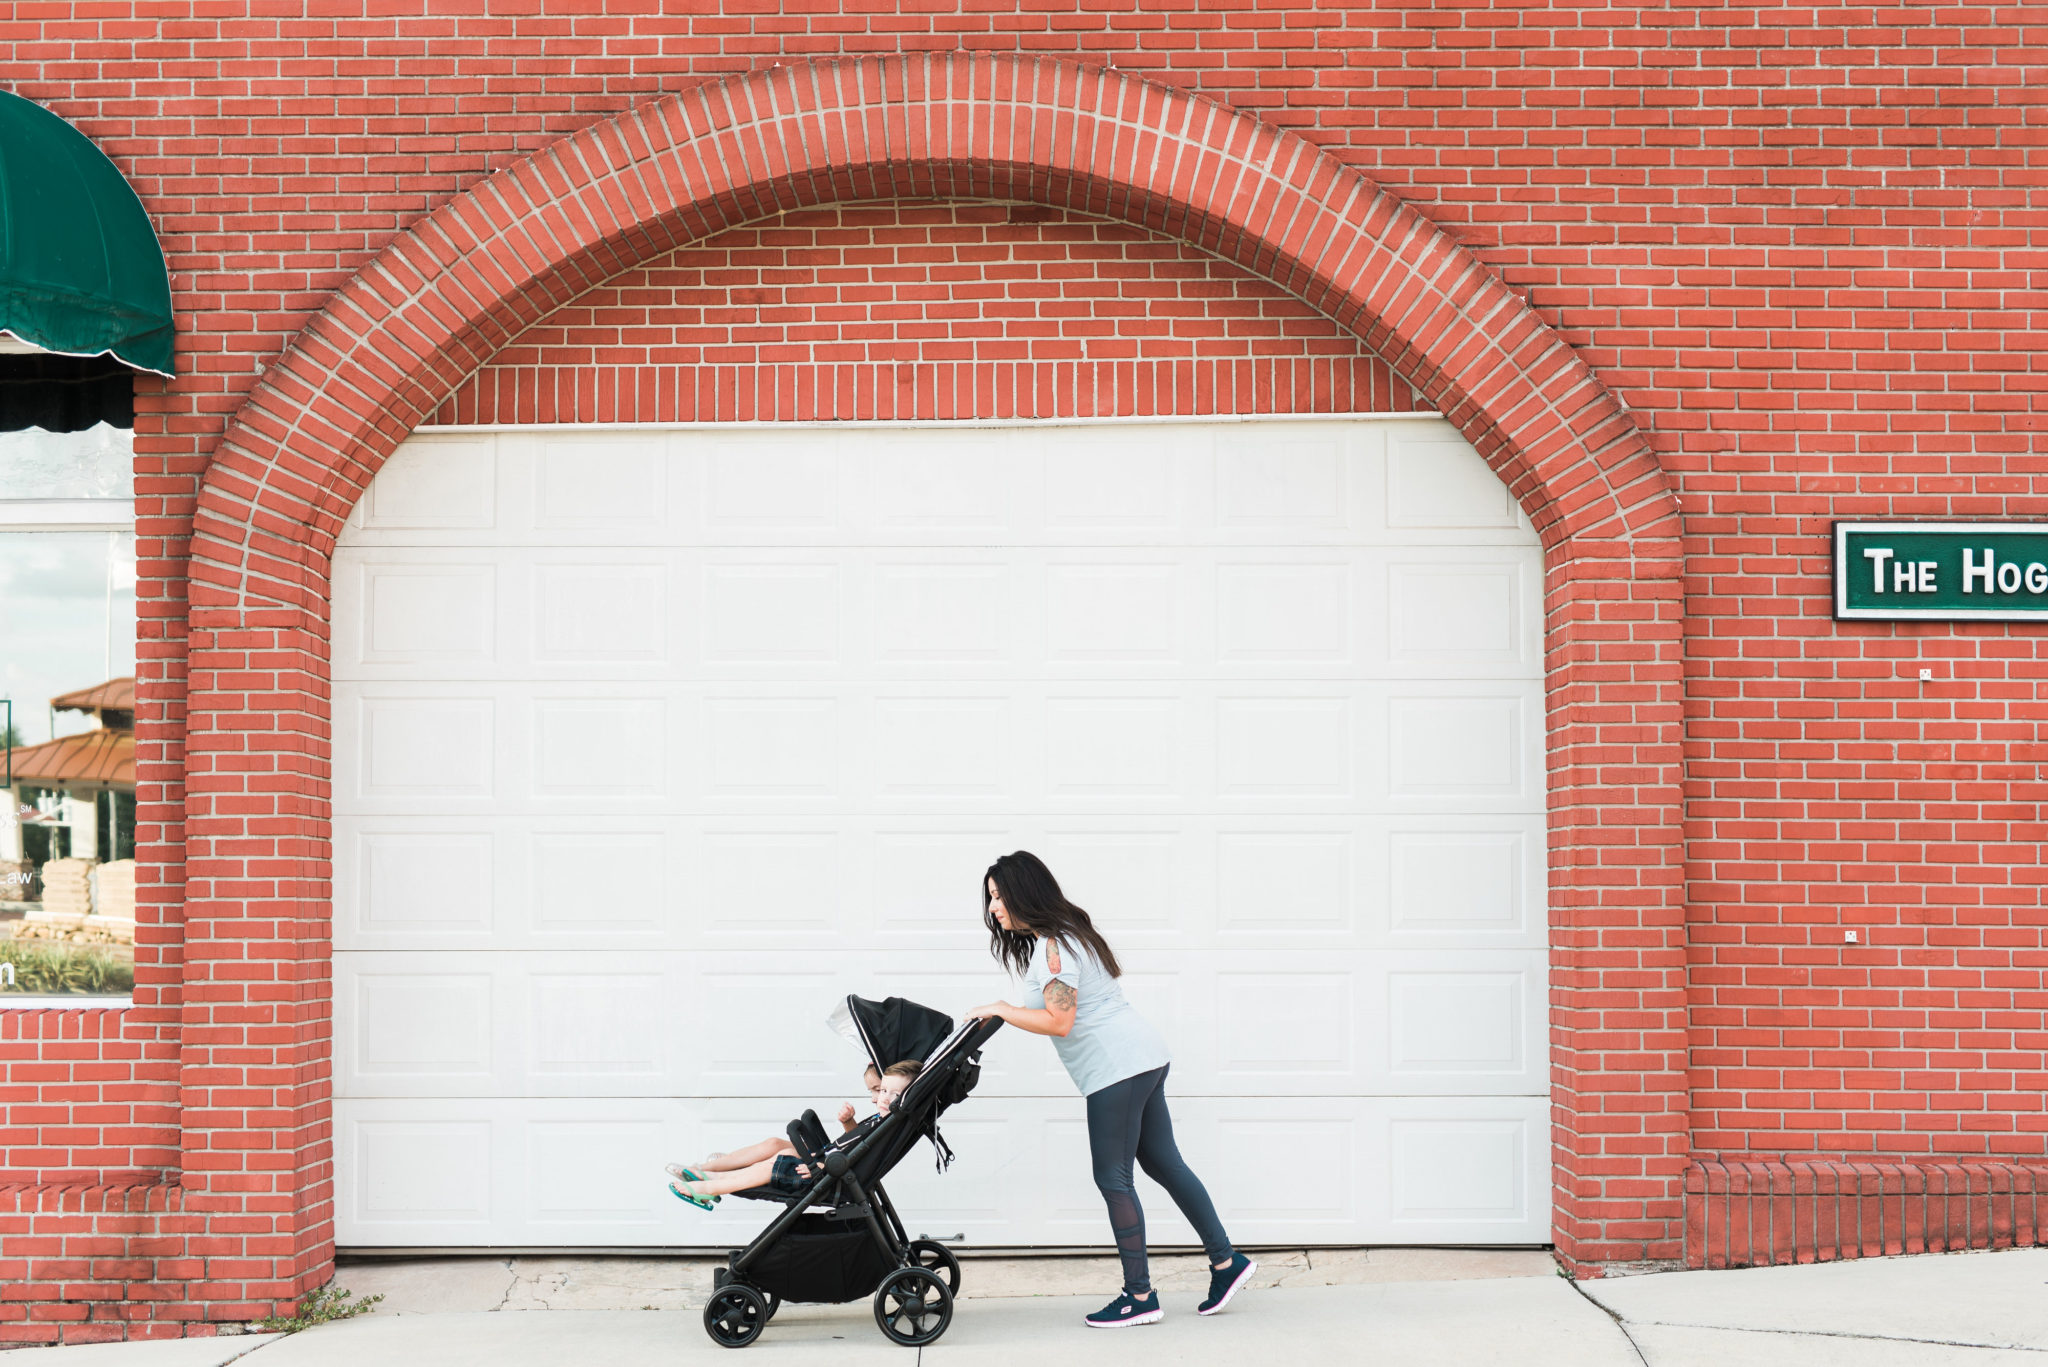 CREATIVE WAYS BUSY MOMS CAN STAY ACTIVE WITH KIDS